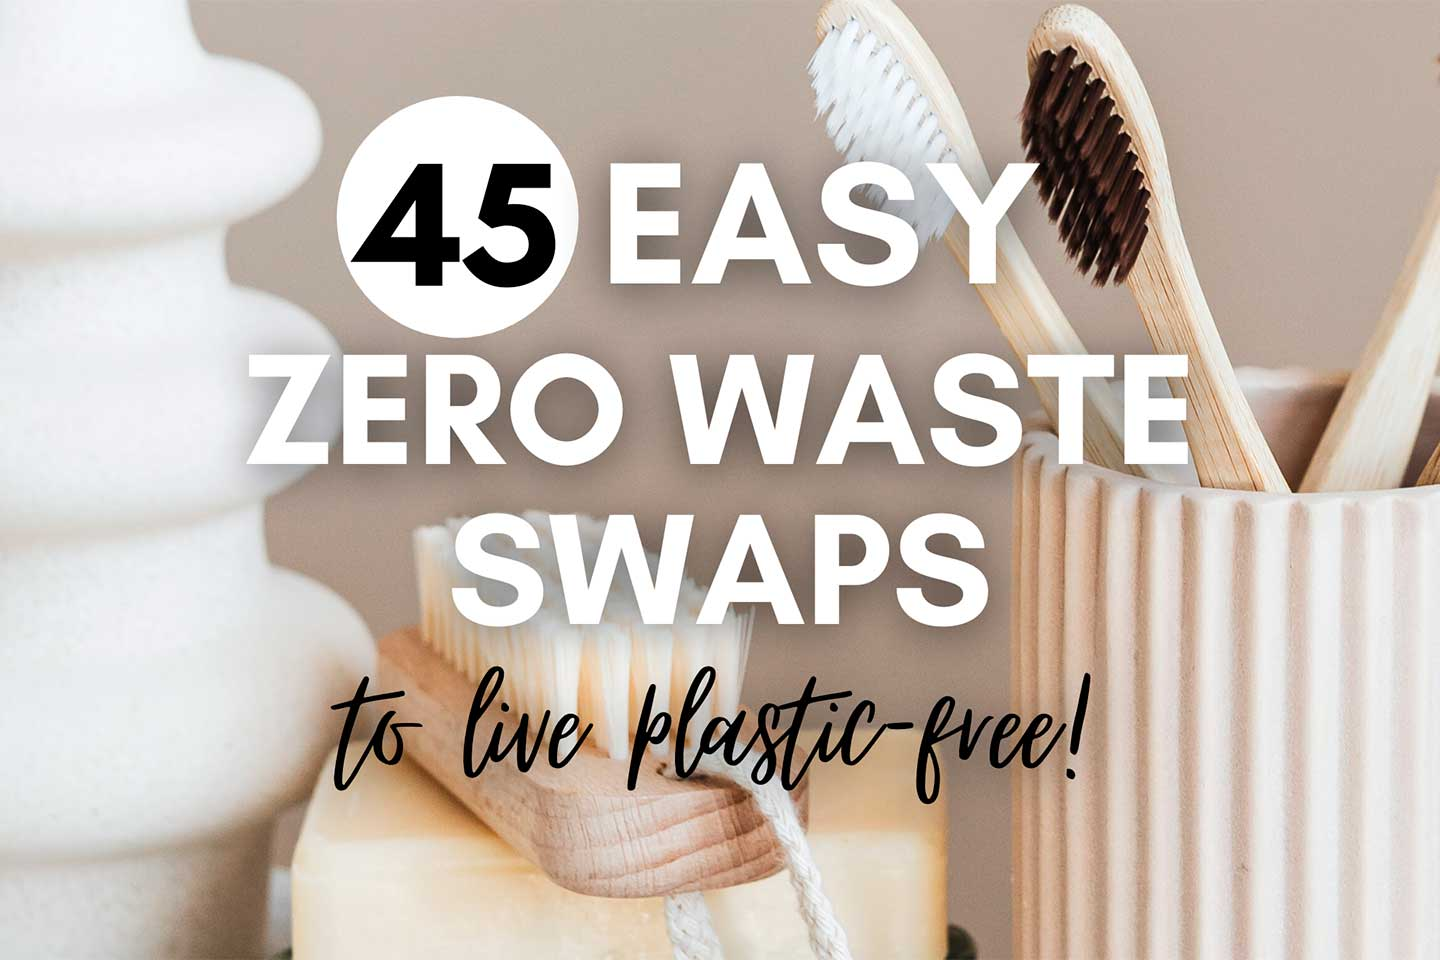 45 Easy Zero Waste Swaps For A Plastic Free Life